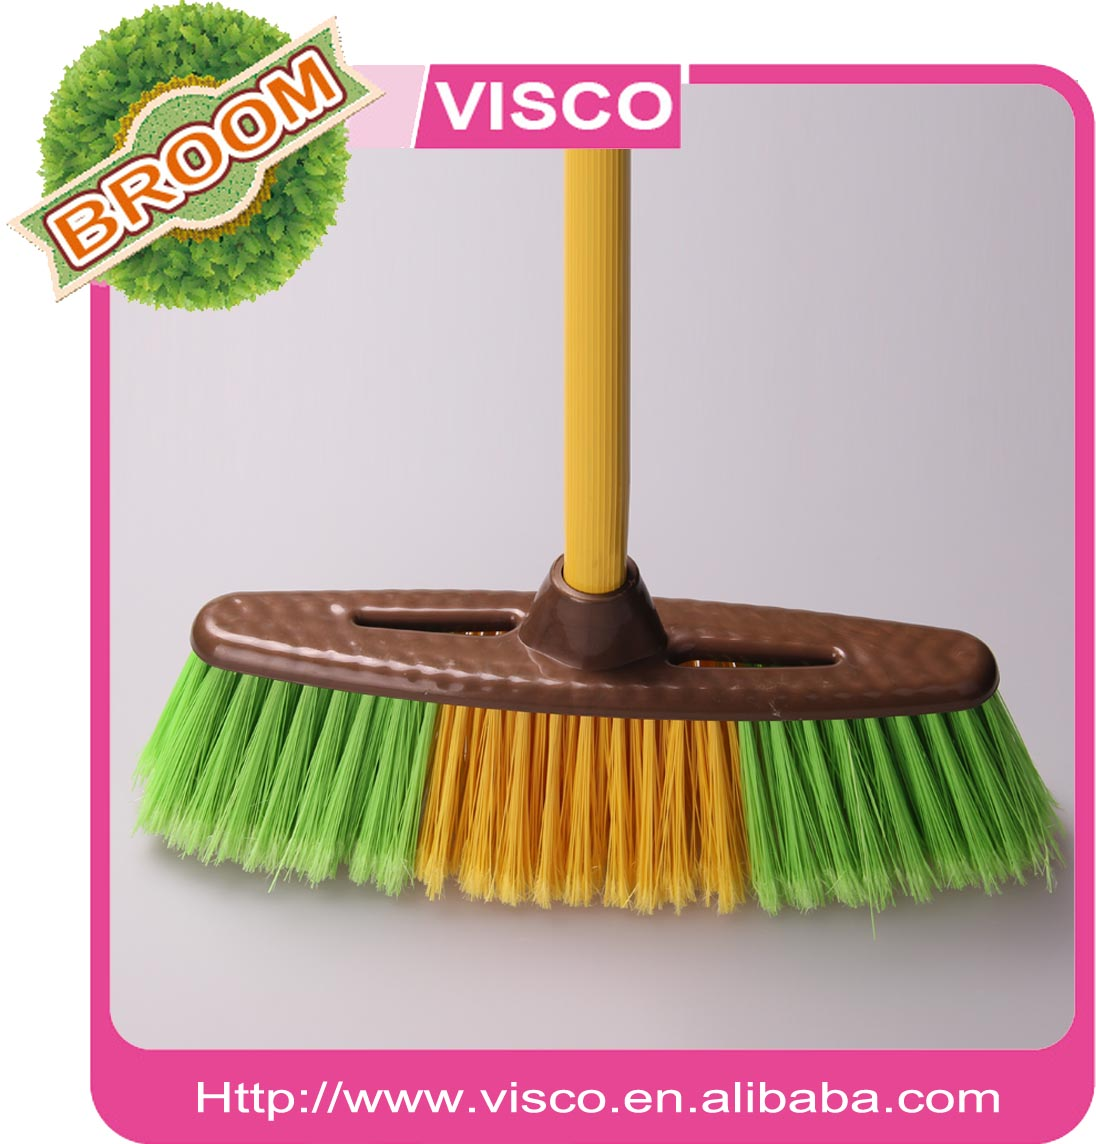 China wholesale plastic brooms manufacturer PC31102G